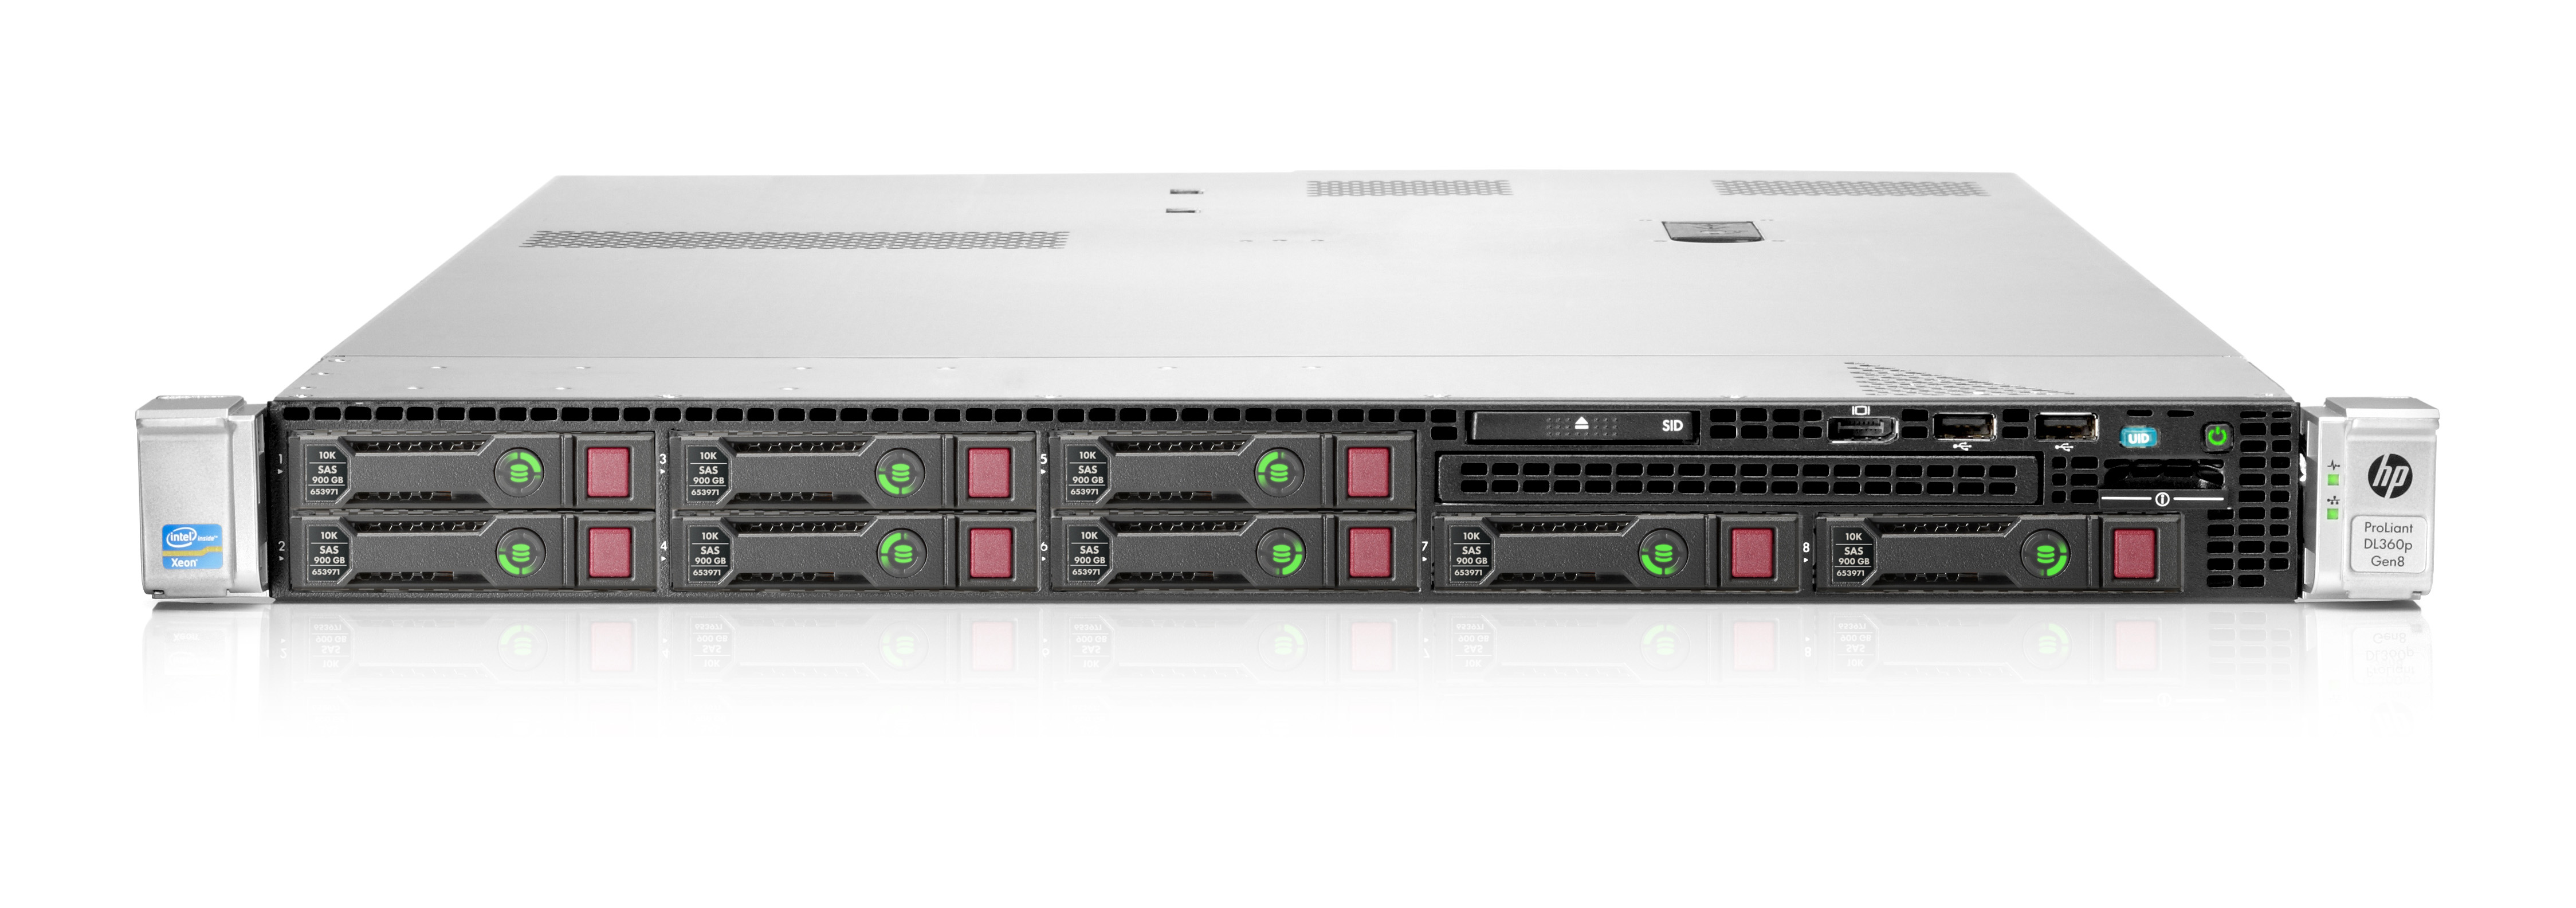 HP ProLiant DL360p Gen8 Server/TV Xeon E5 (2603) 1.8GHz (2P) 8GB-R (noHDD) P420i SFF with 460W Power Supply